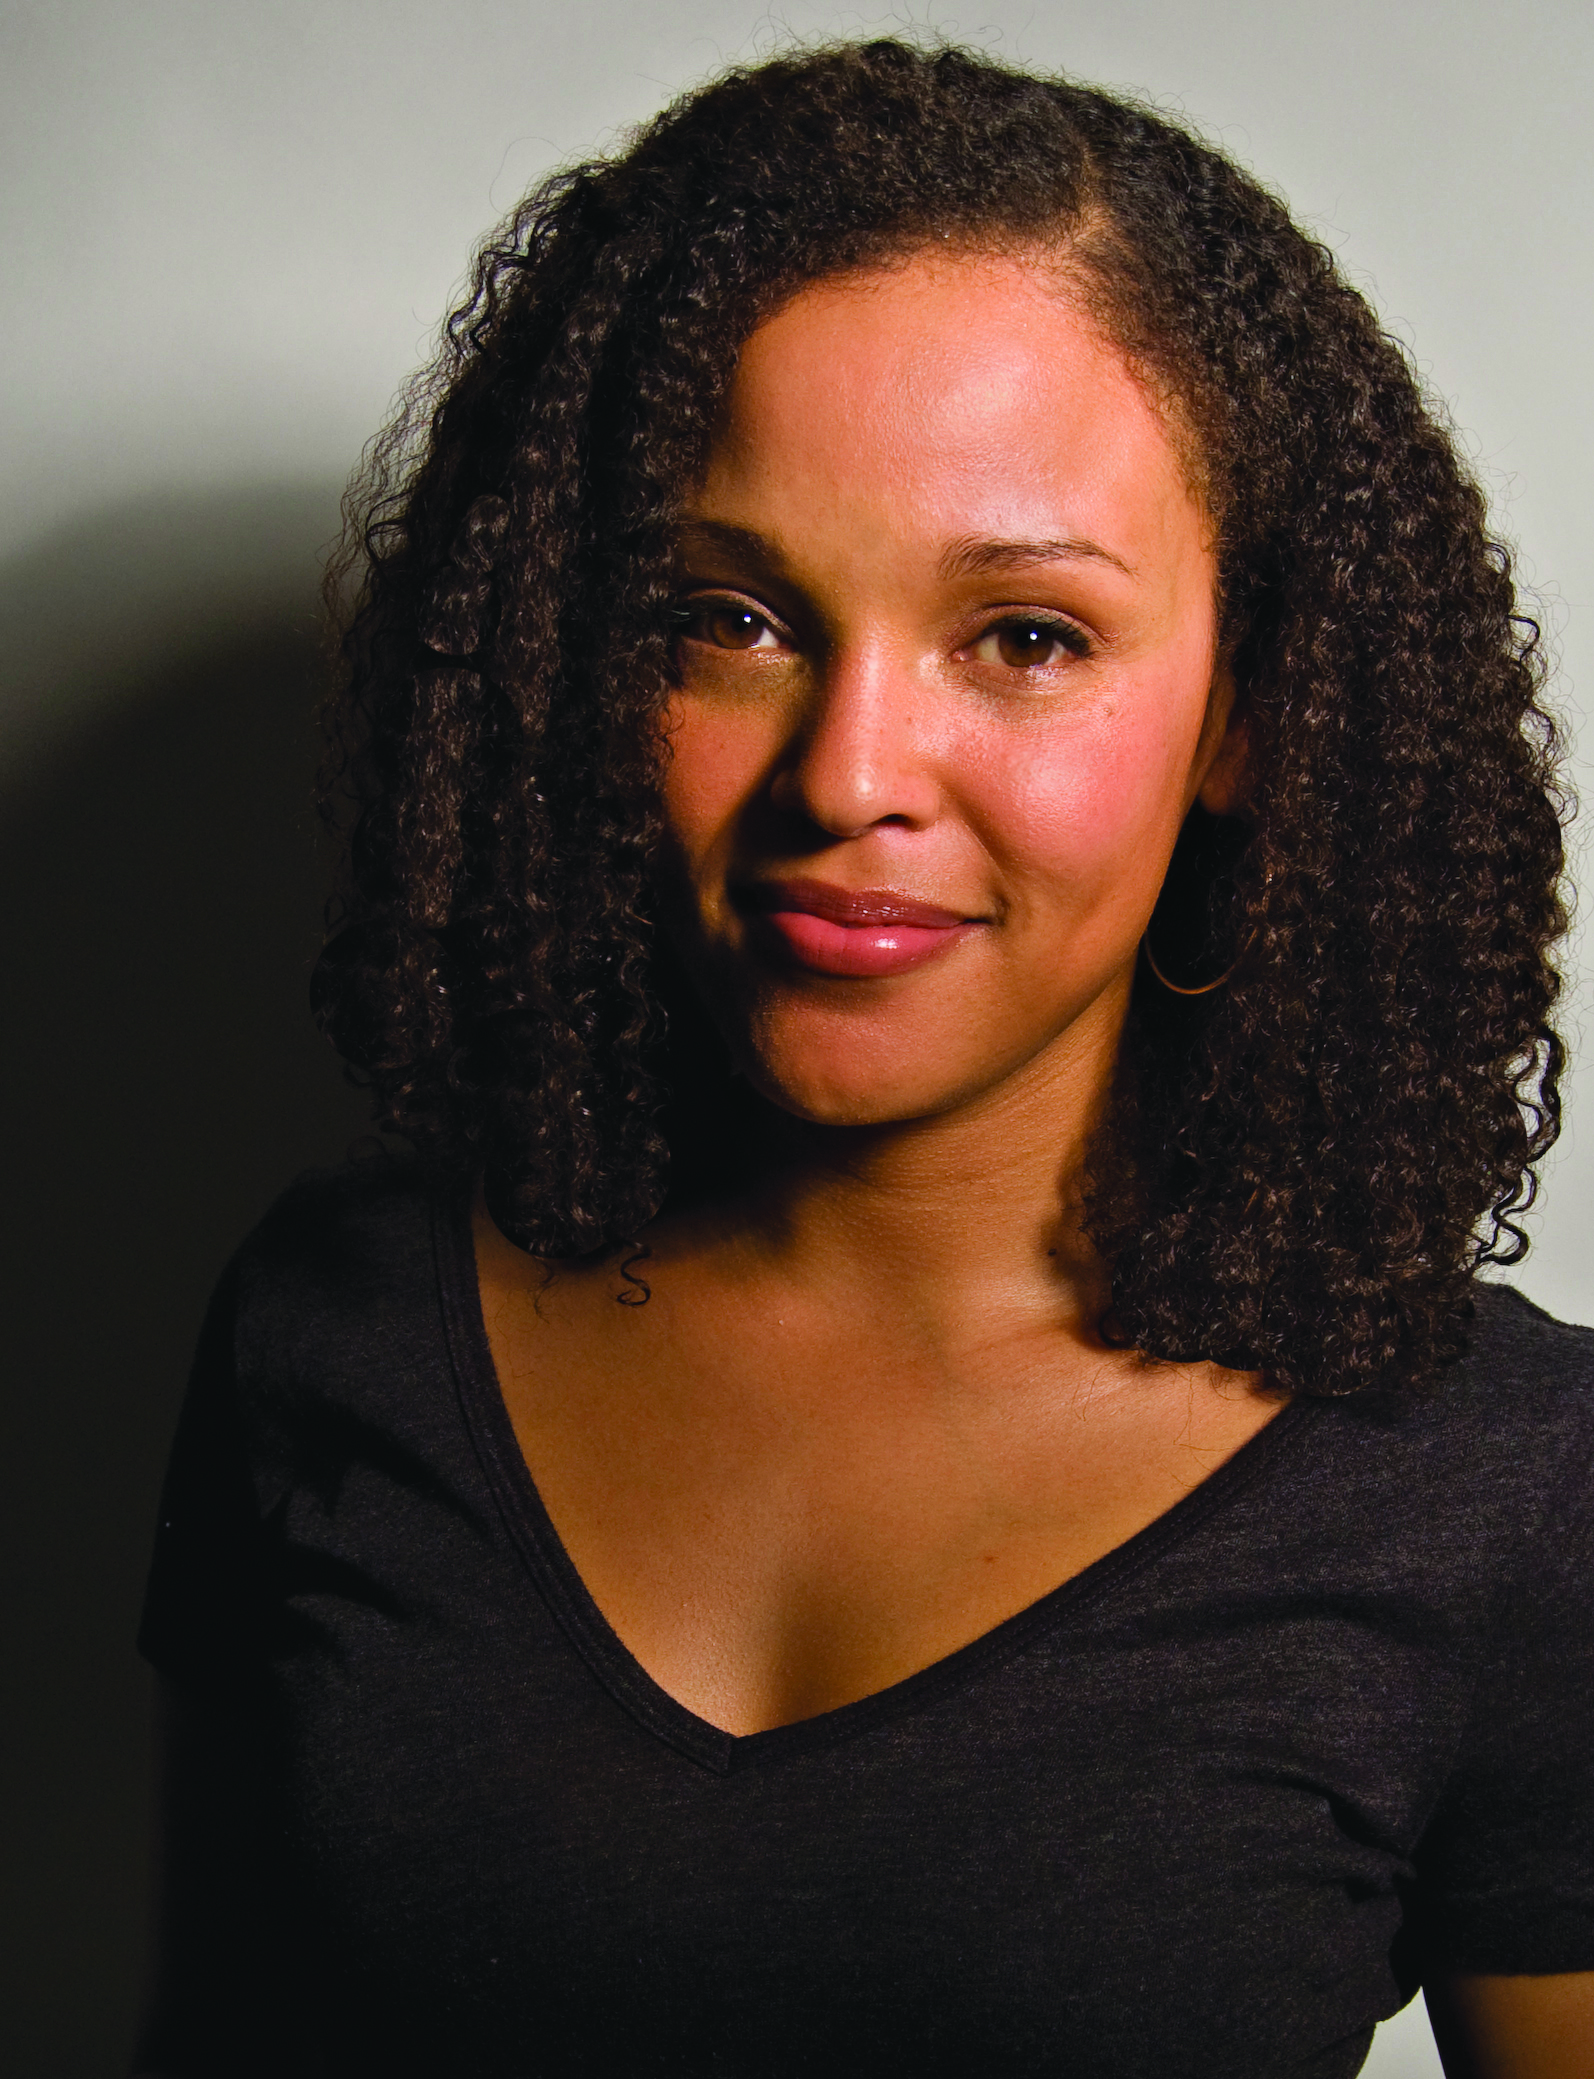 Caption: Jesmyn Ward, Credit: Tony Cook